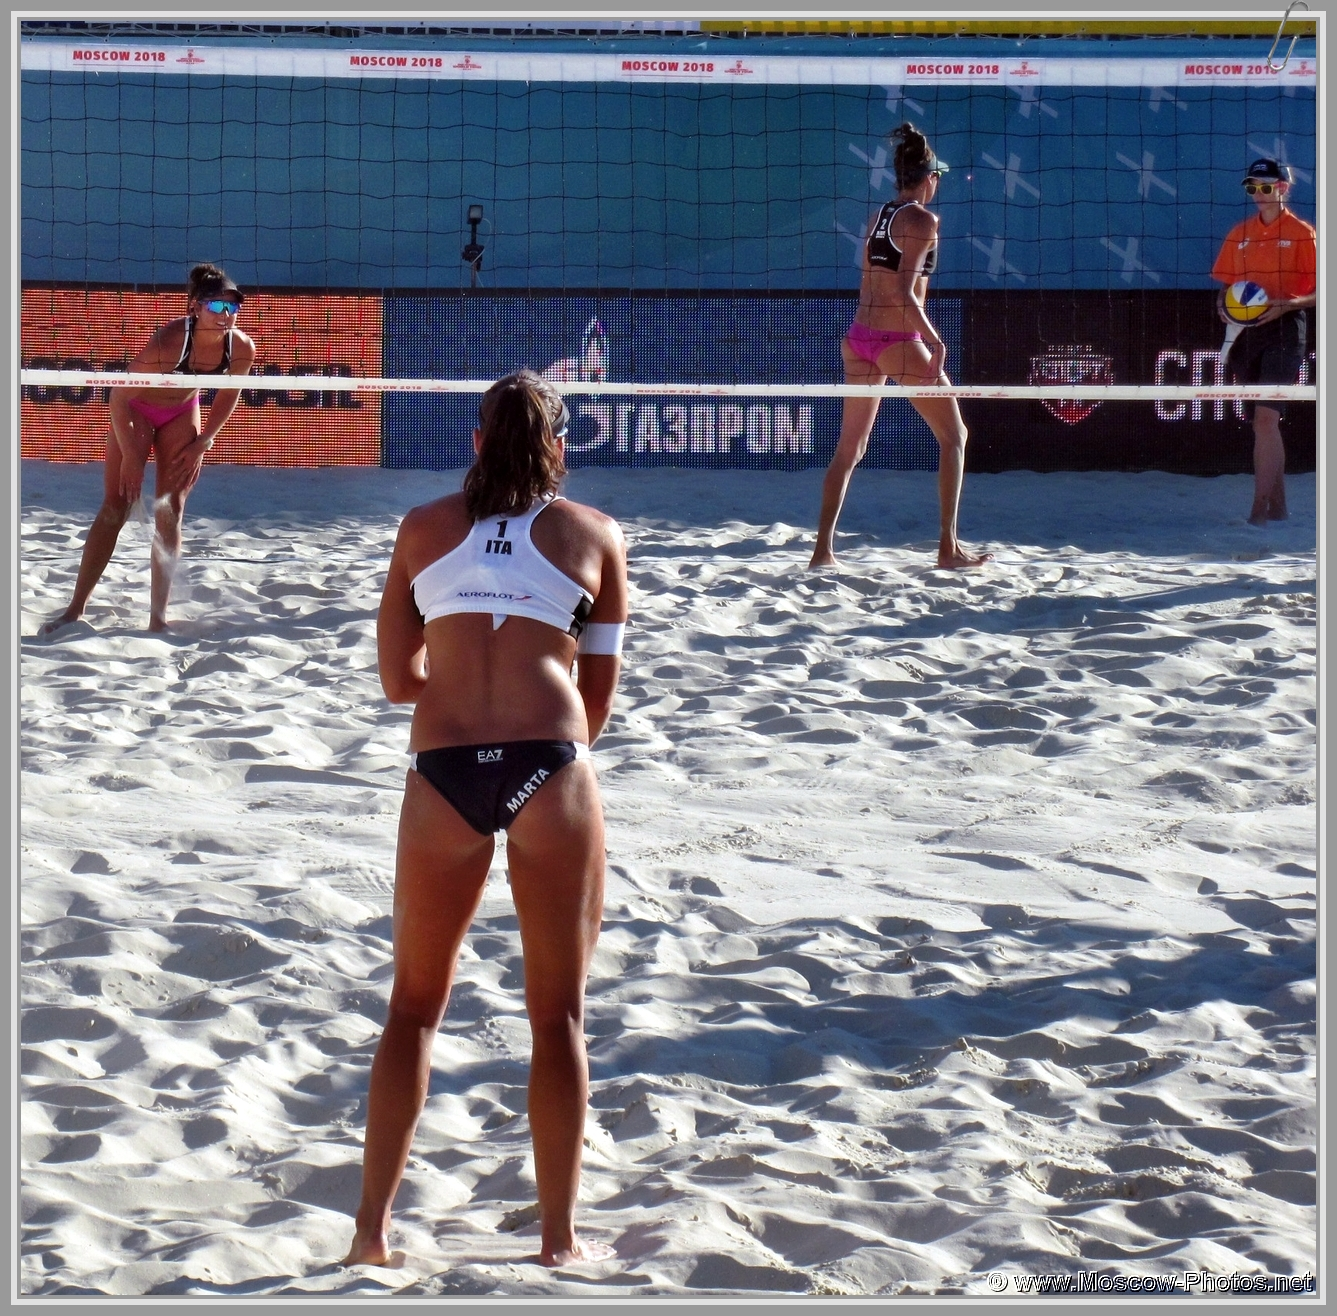 Marta Menegatti at FIVB Beach Volleyball World Tour